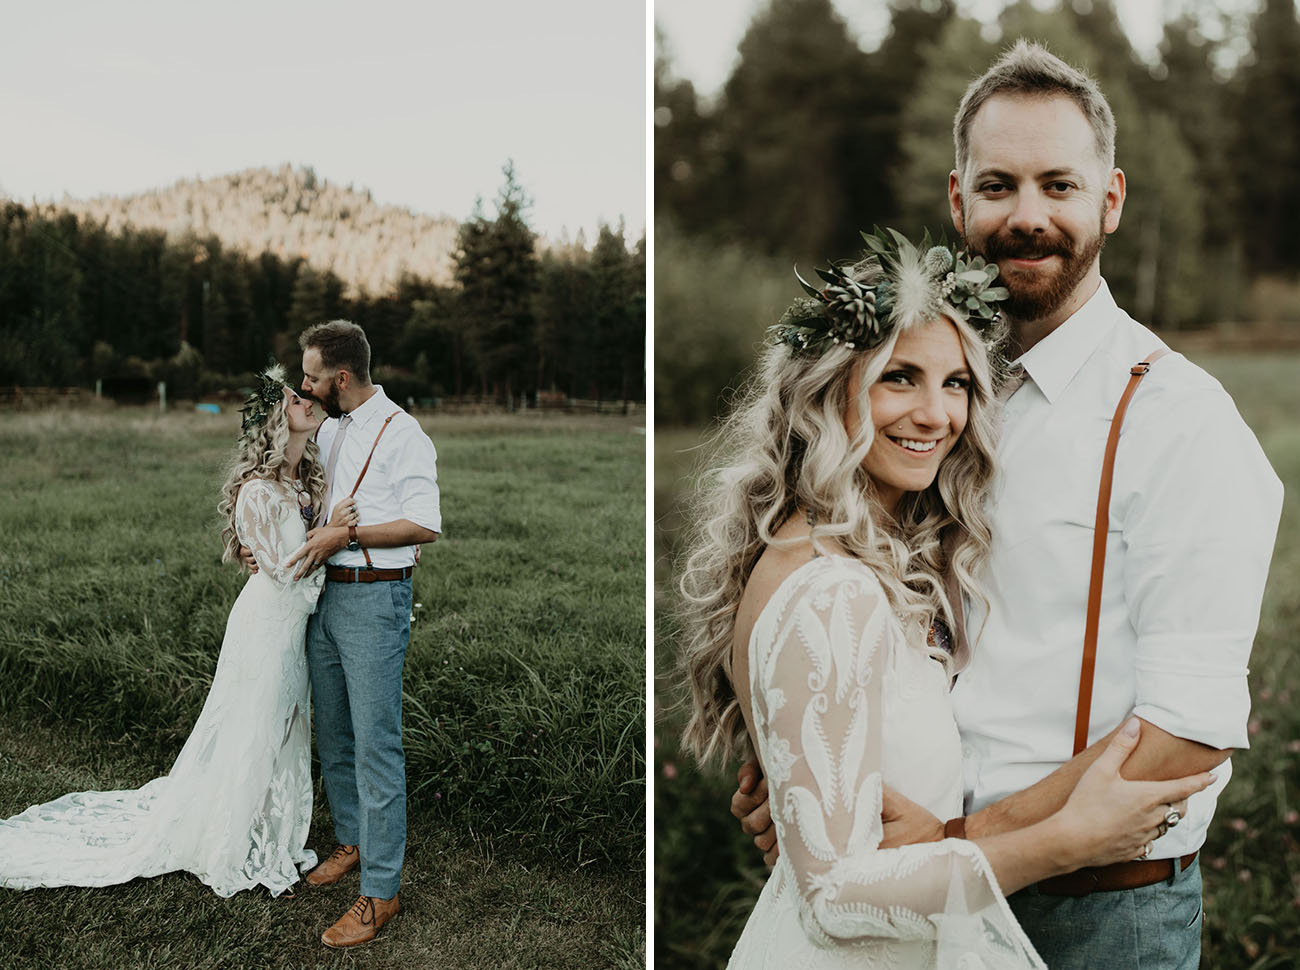 What a beautiful couple and what a relaxed wedding outdoors